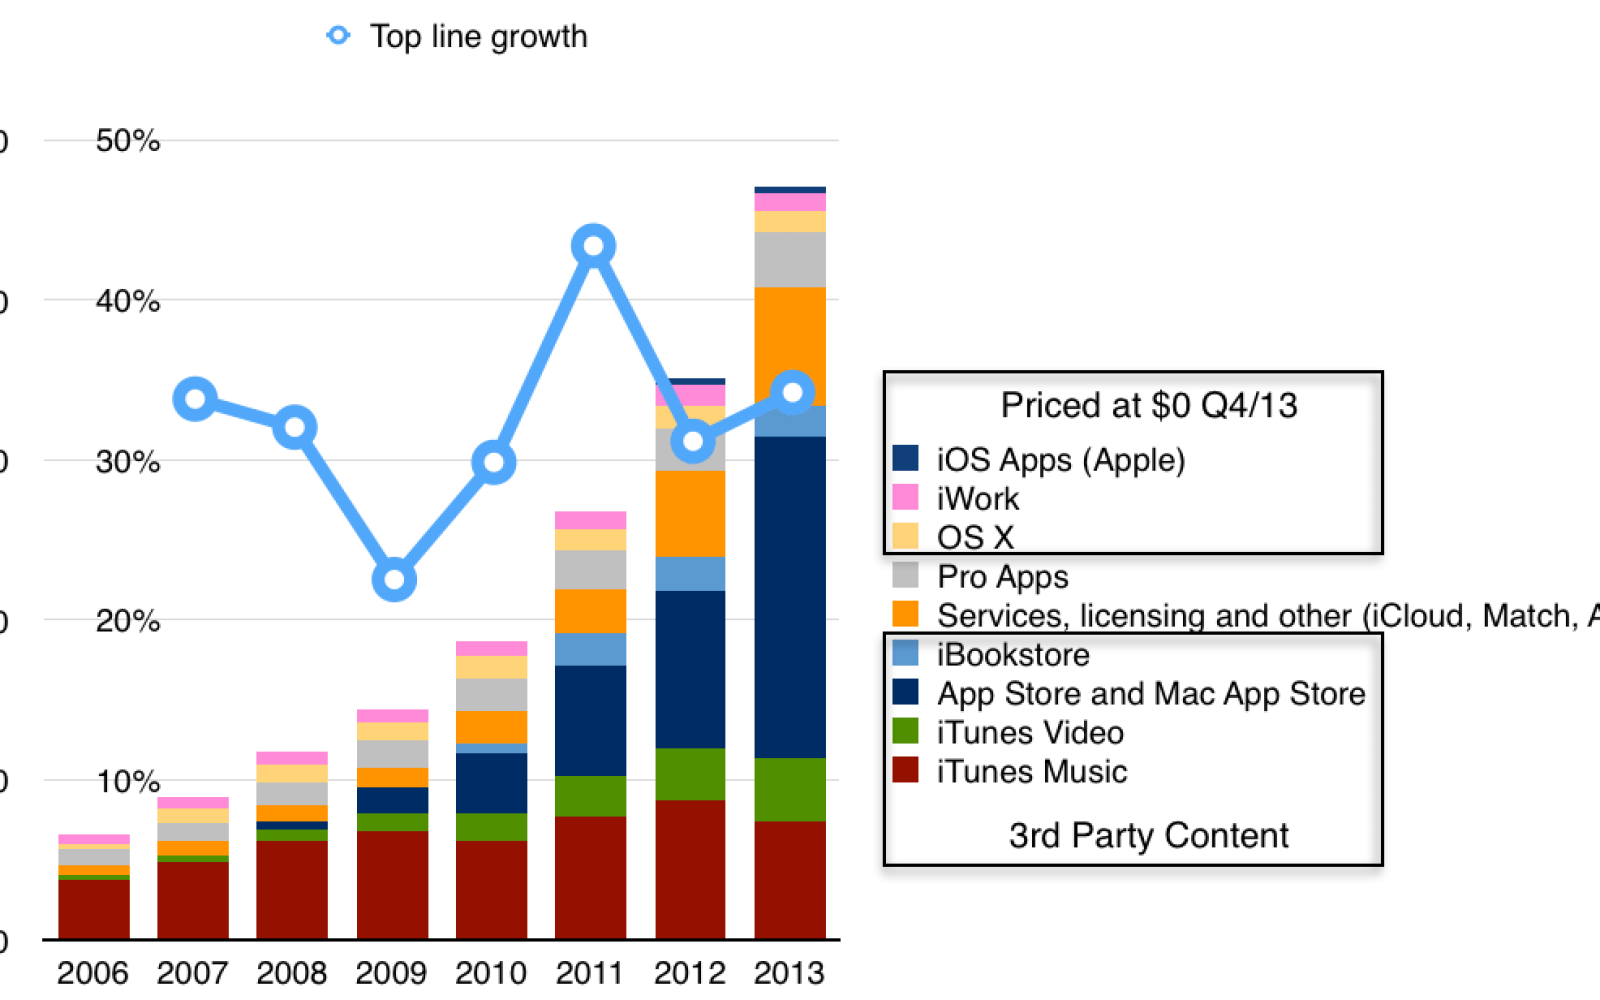 iTunes as a standalone business would be ranked 130 in the Fortune 500